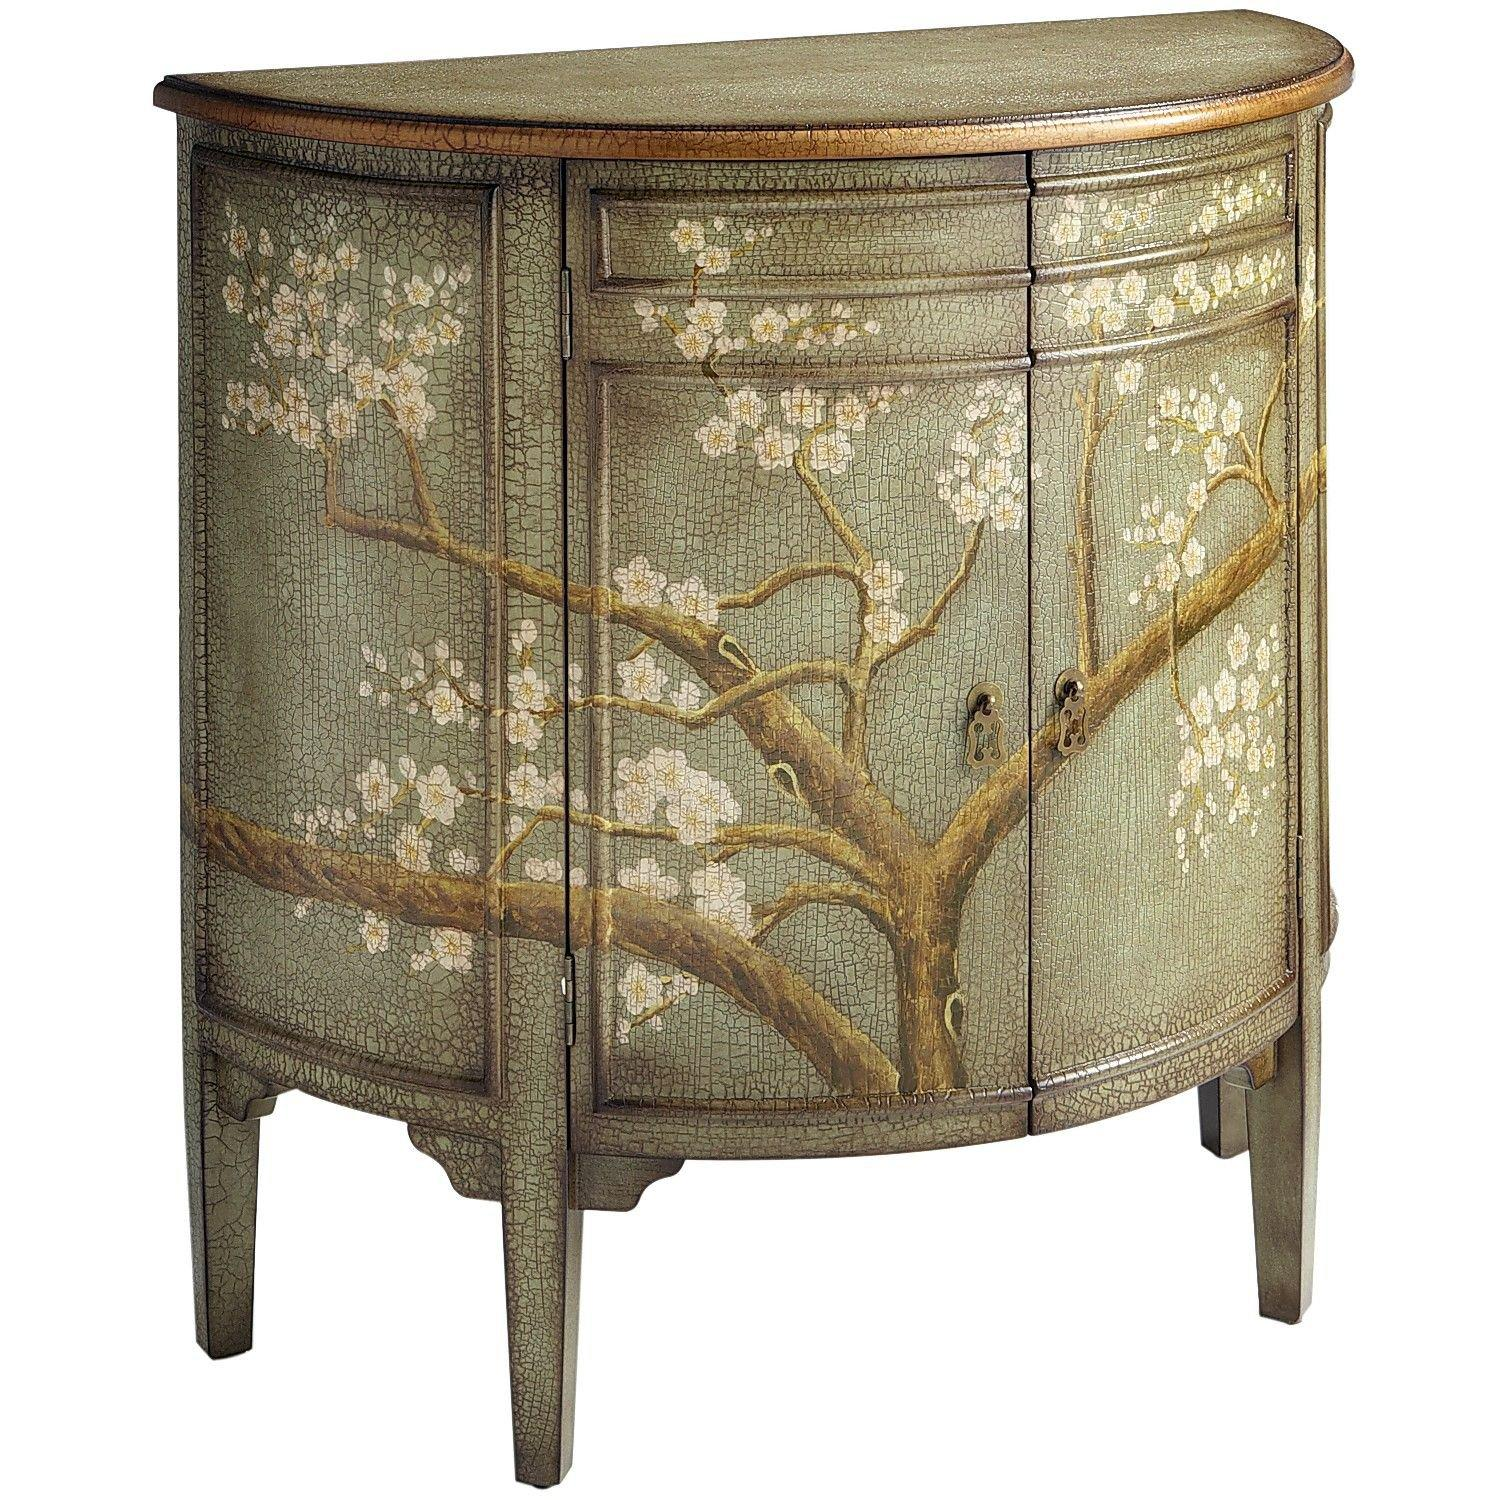 Pier One Baby Furniture: Sakura Cabinet From Pier 1 Imports